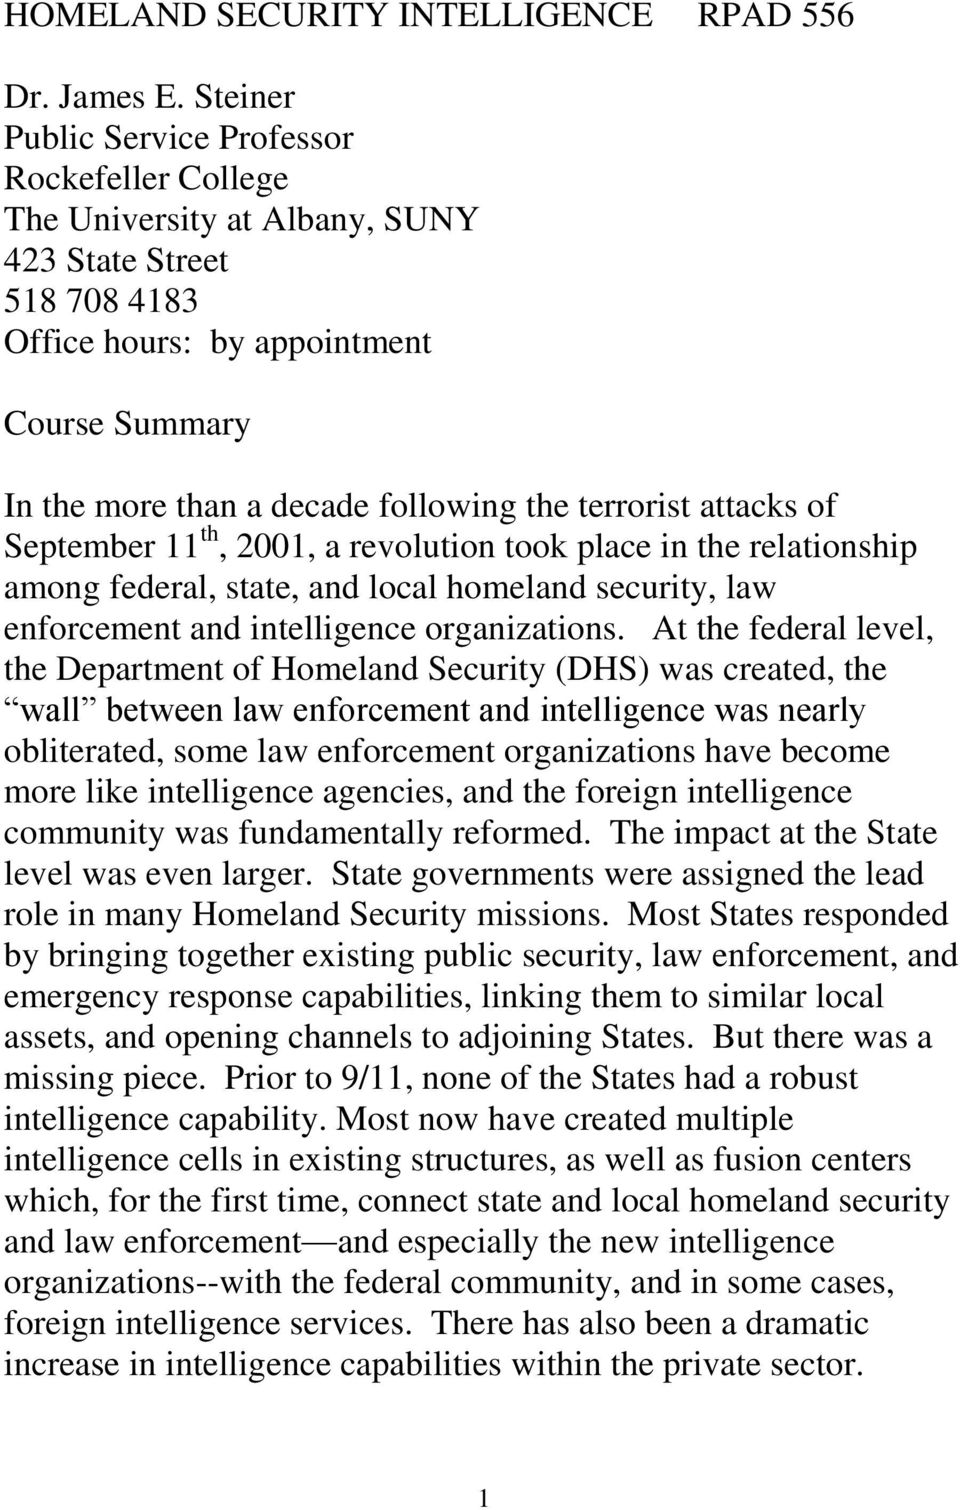 terrorist attacks of September 11 th, 2001, a revolution took place in the relationship among federal, state, and local homeland security, law enforcement and intelligence organizations.